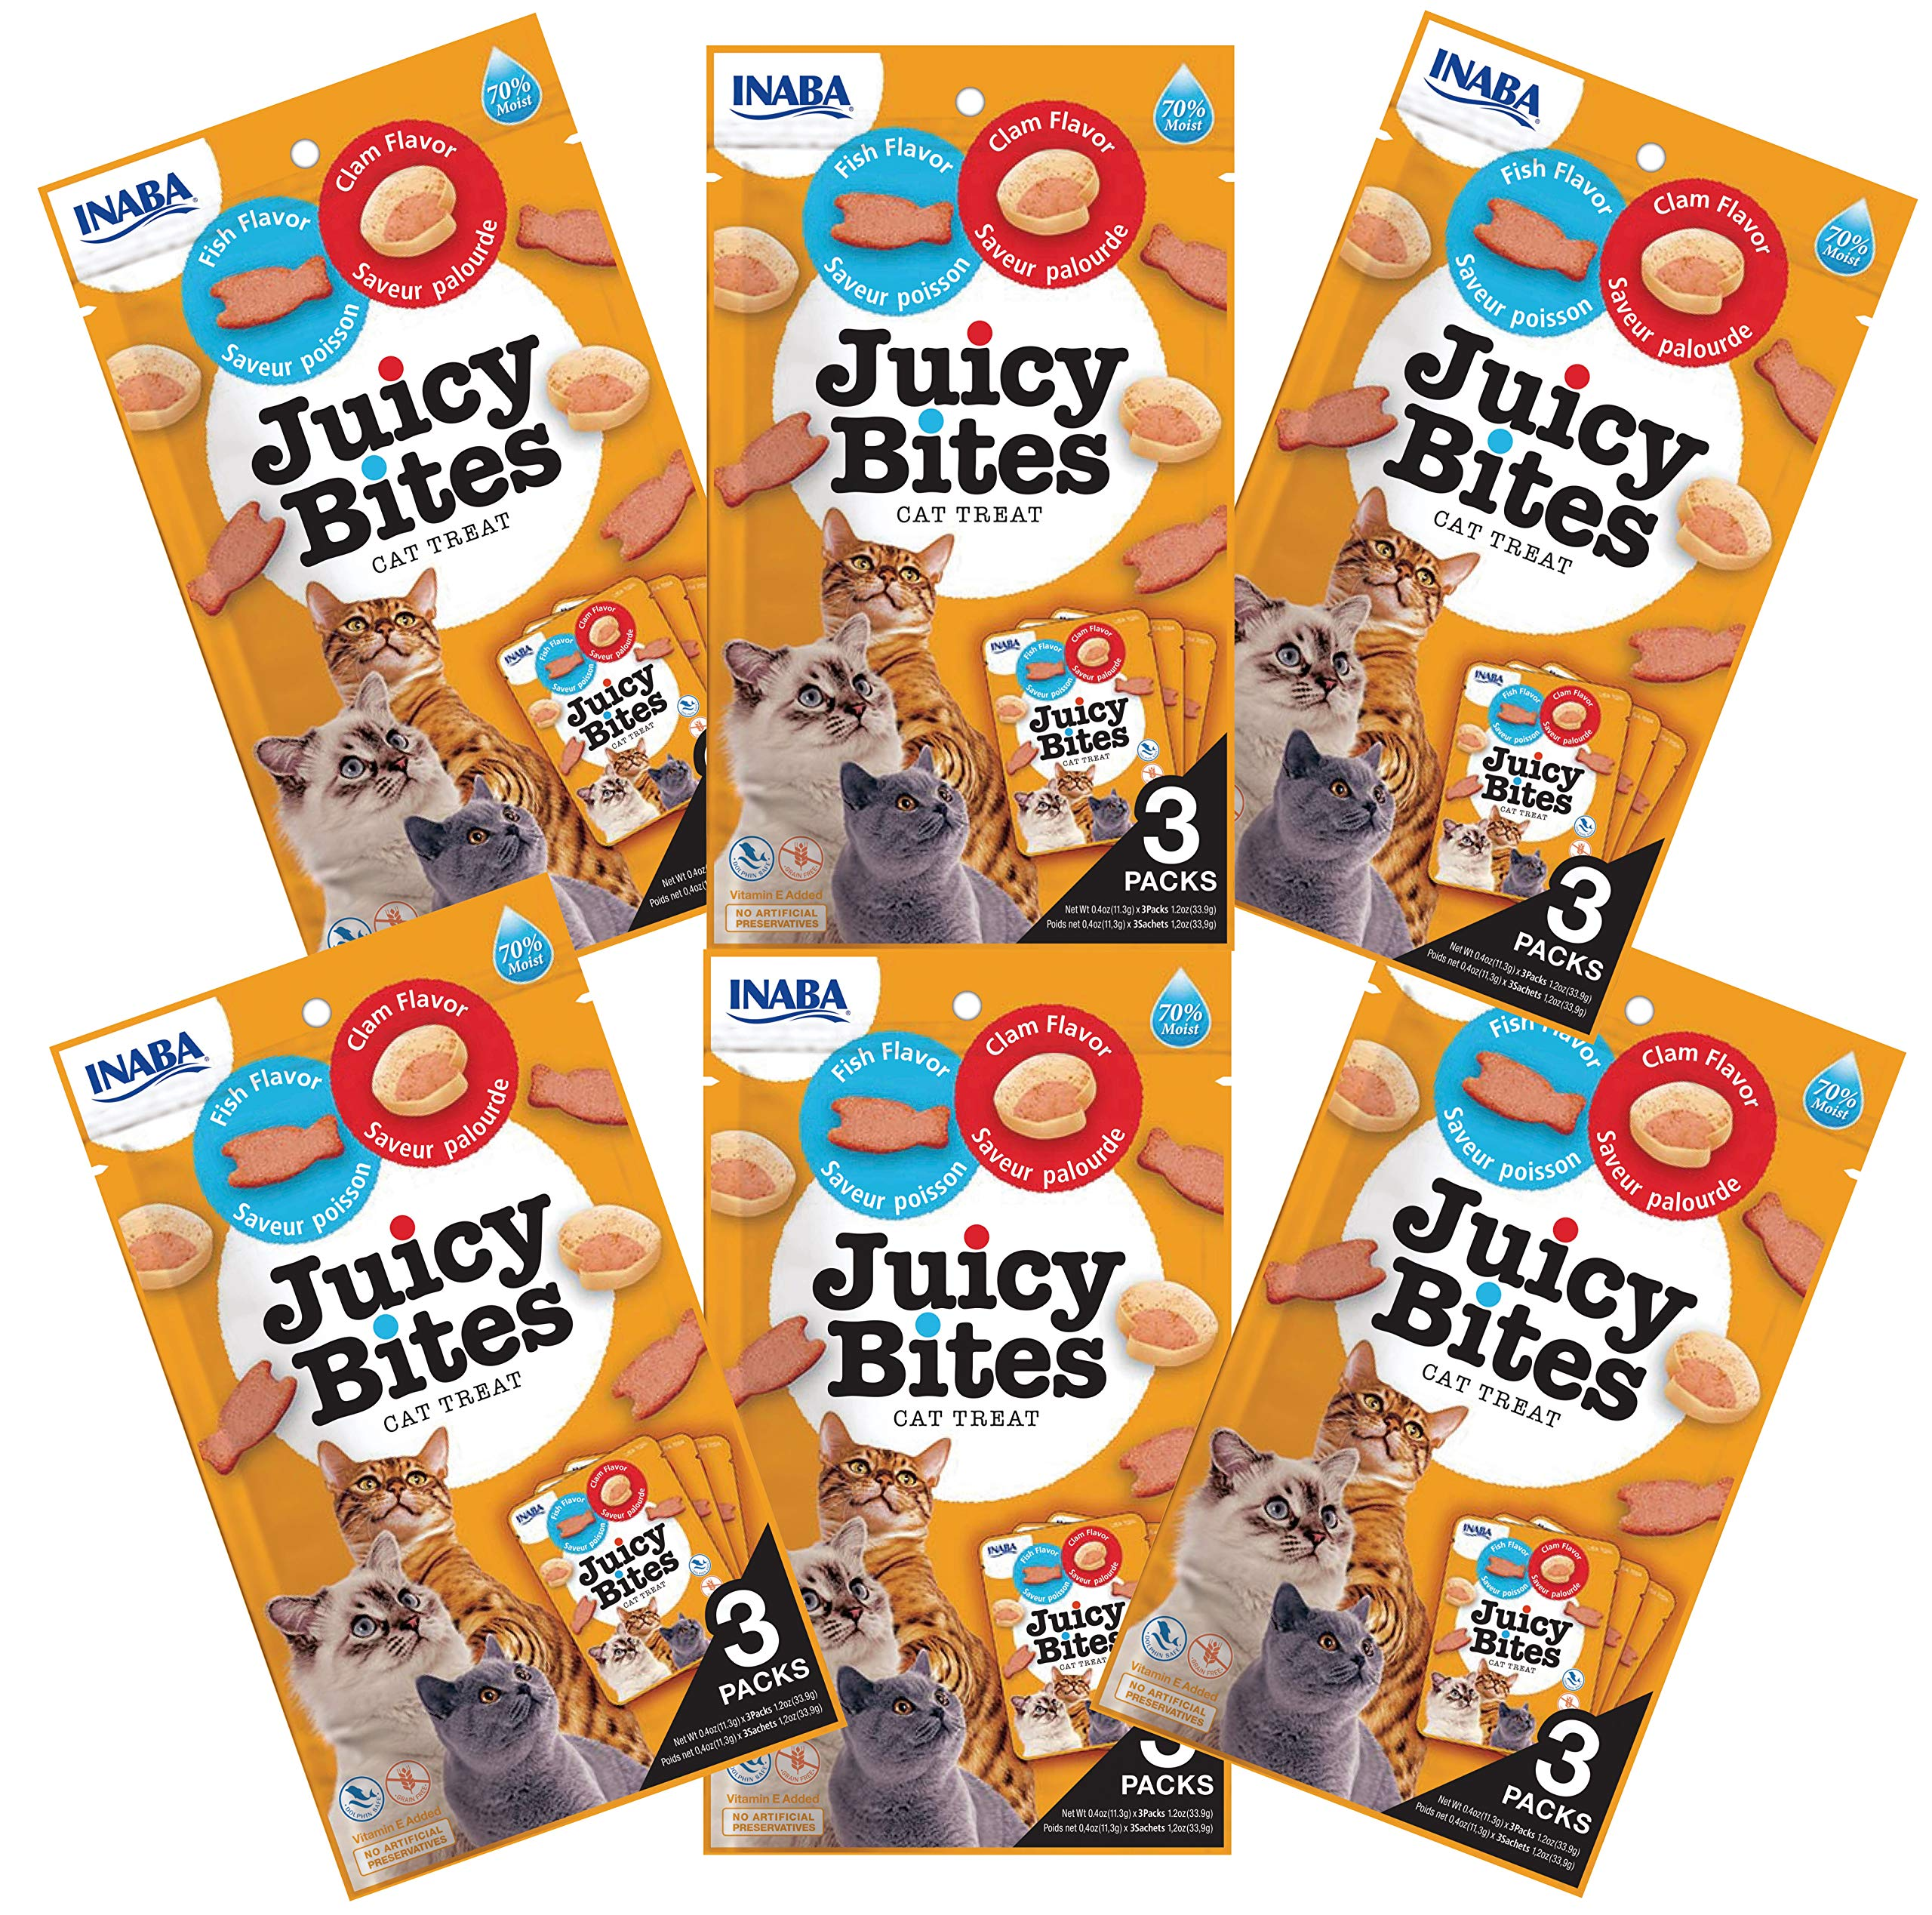 INABA Juicy Bites Fish and Clam Flavor Cat Treats 18pk by INABA